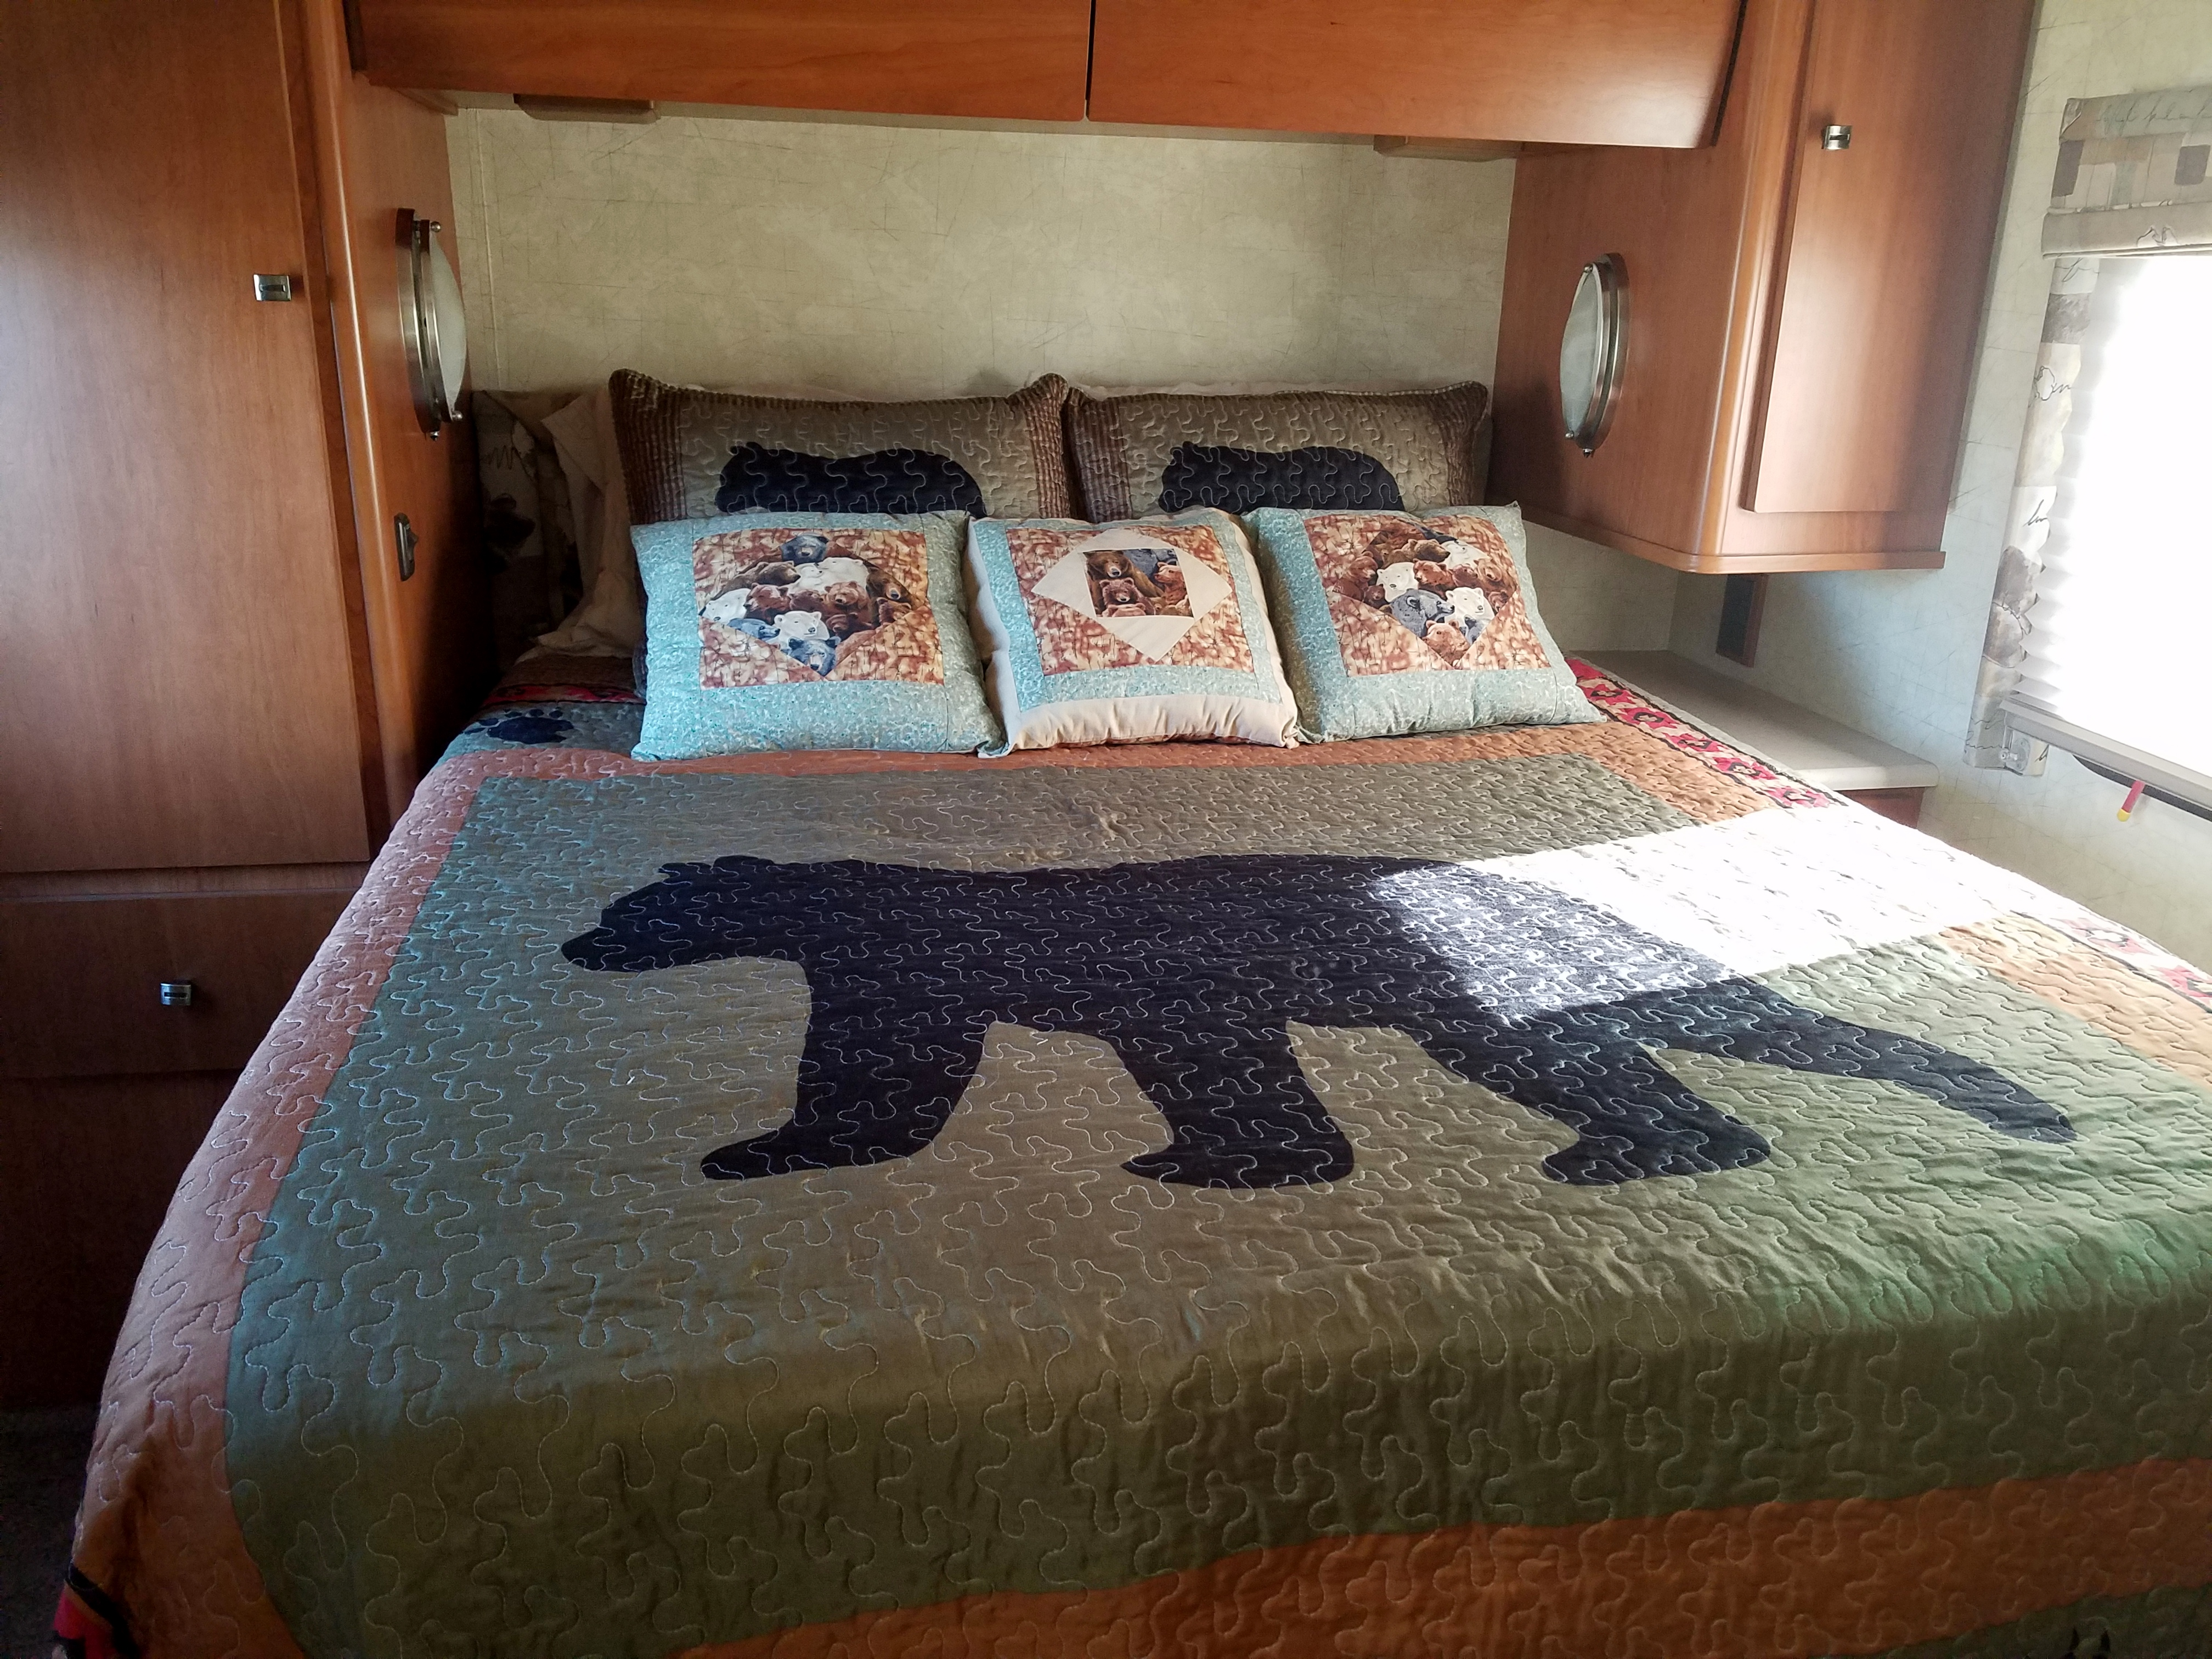 Queen size bed with memory foam pad and pillows.  Campers say it is very comfortable.